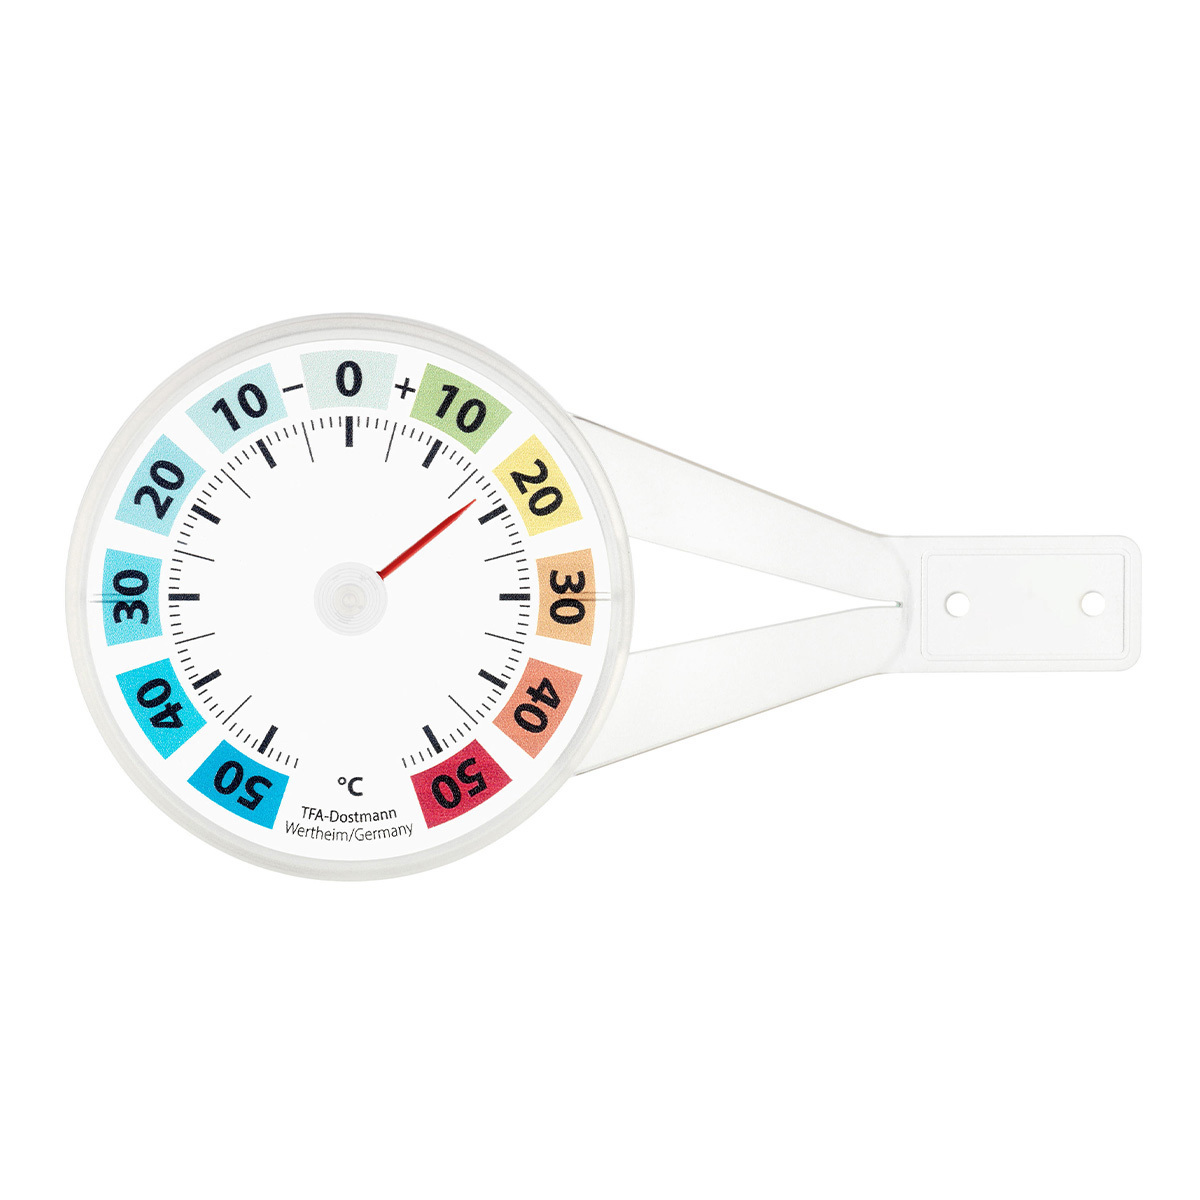 14-6019-analoges-fensterthermometer-1200x1200px.jpg